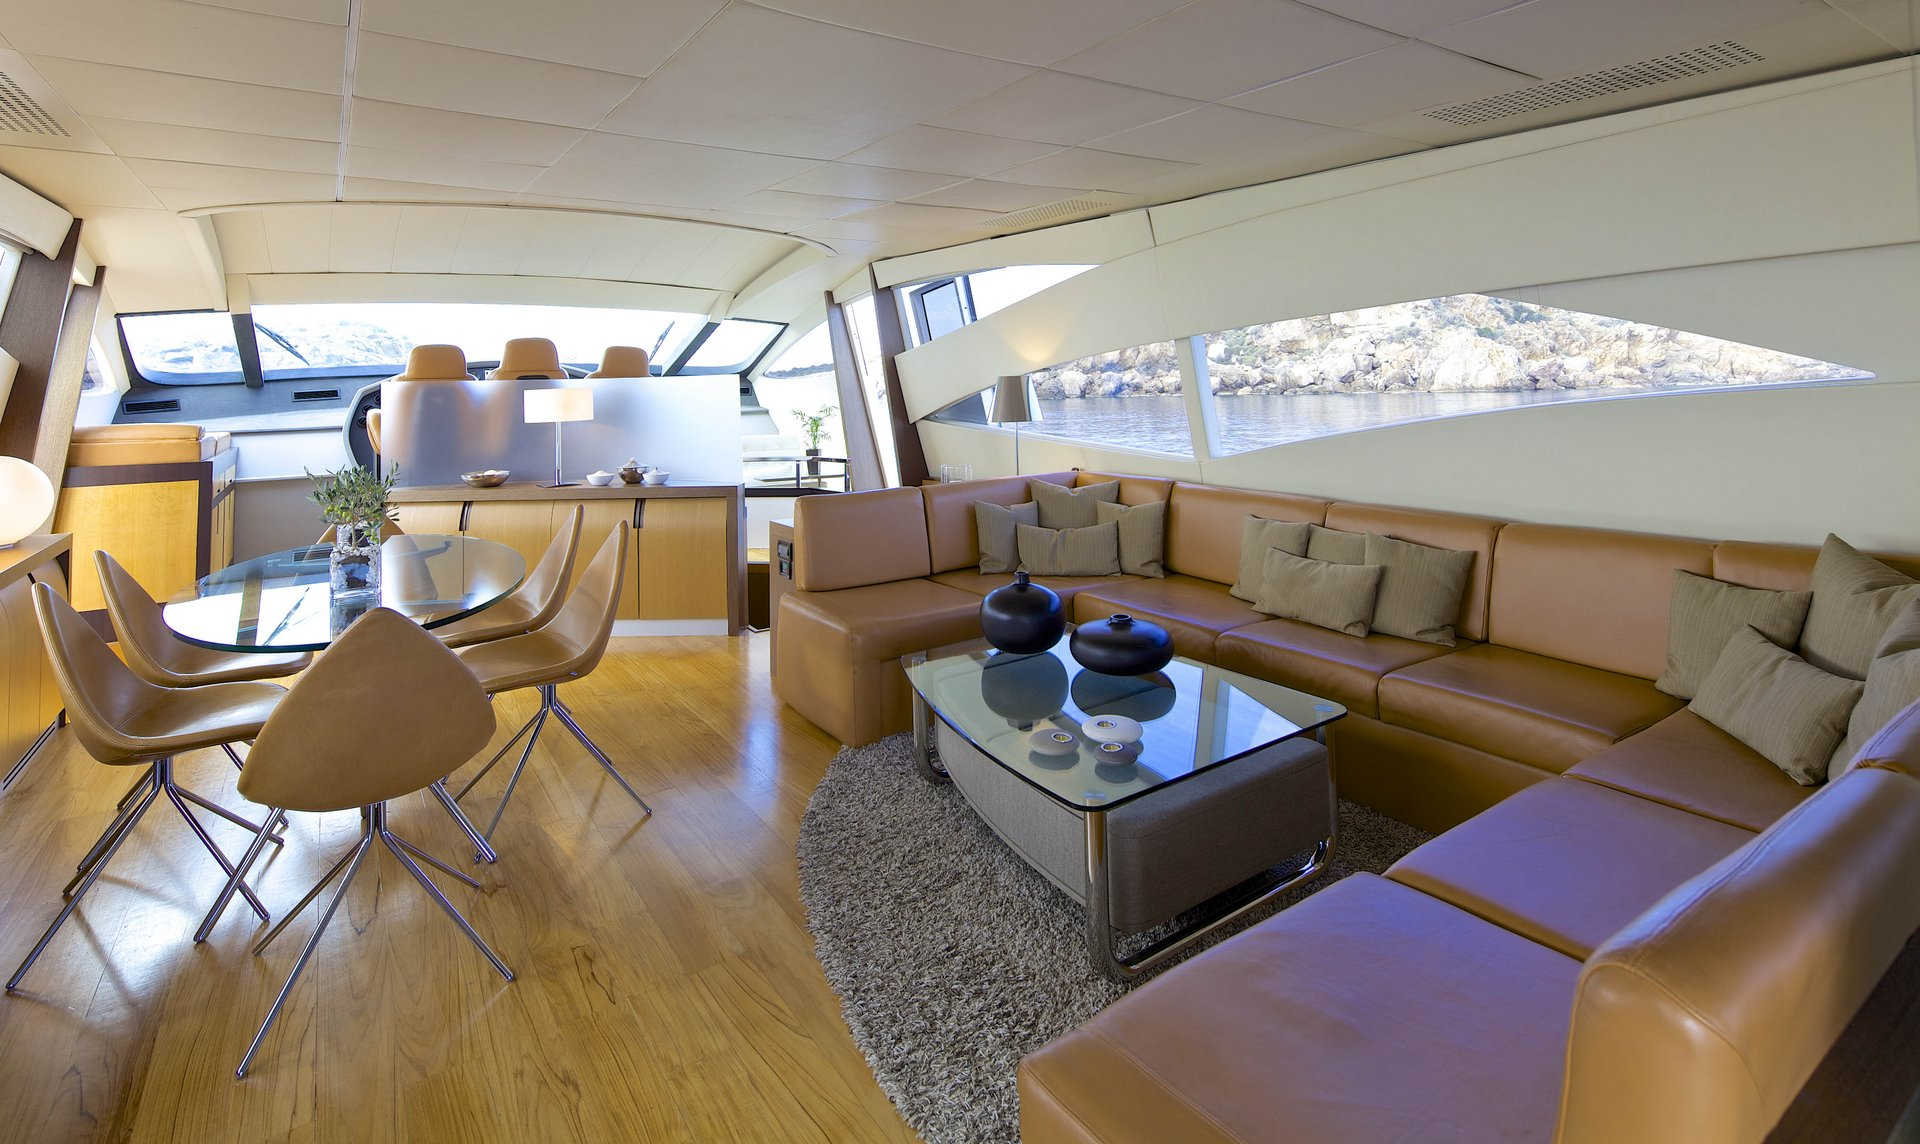 M/Y SOLARIS yacht for charter interior design